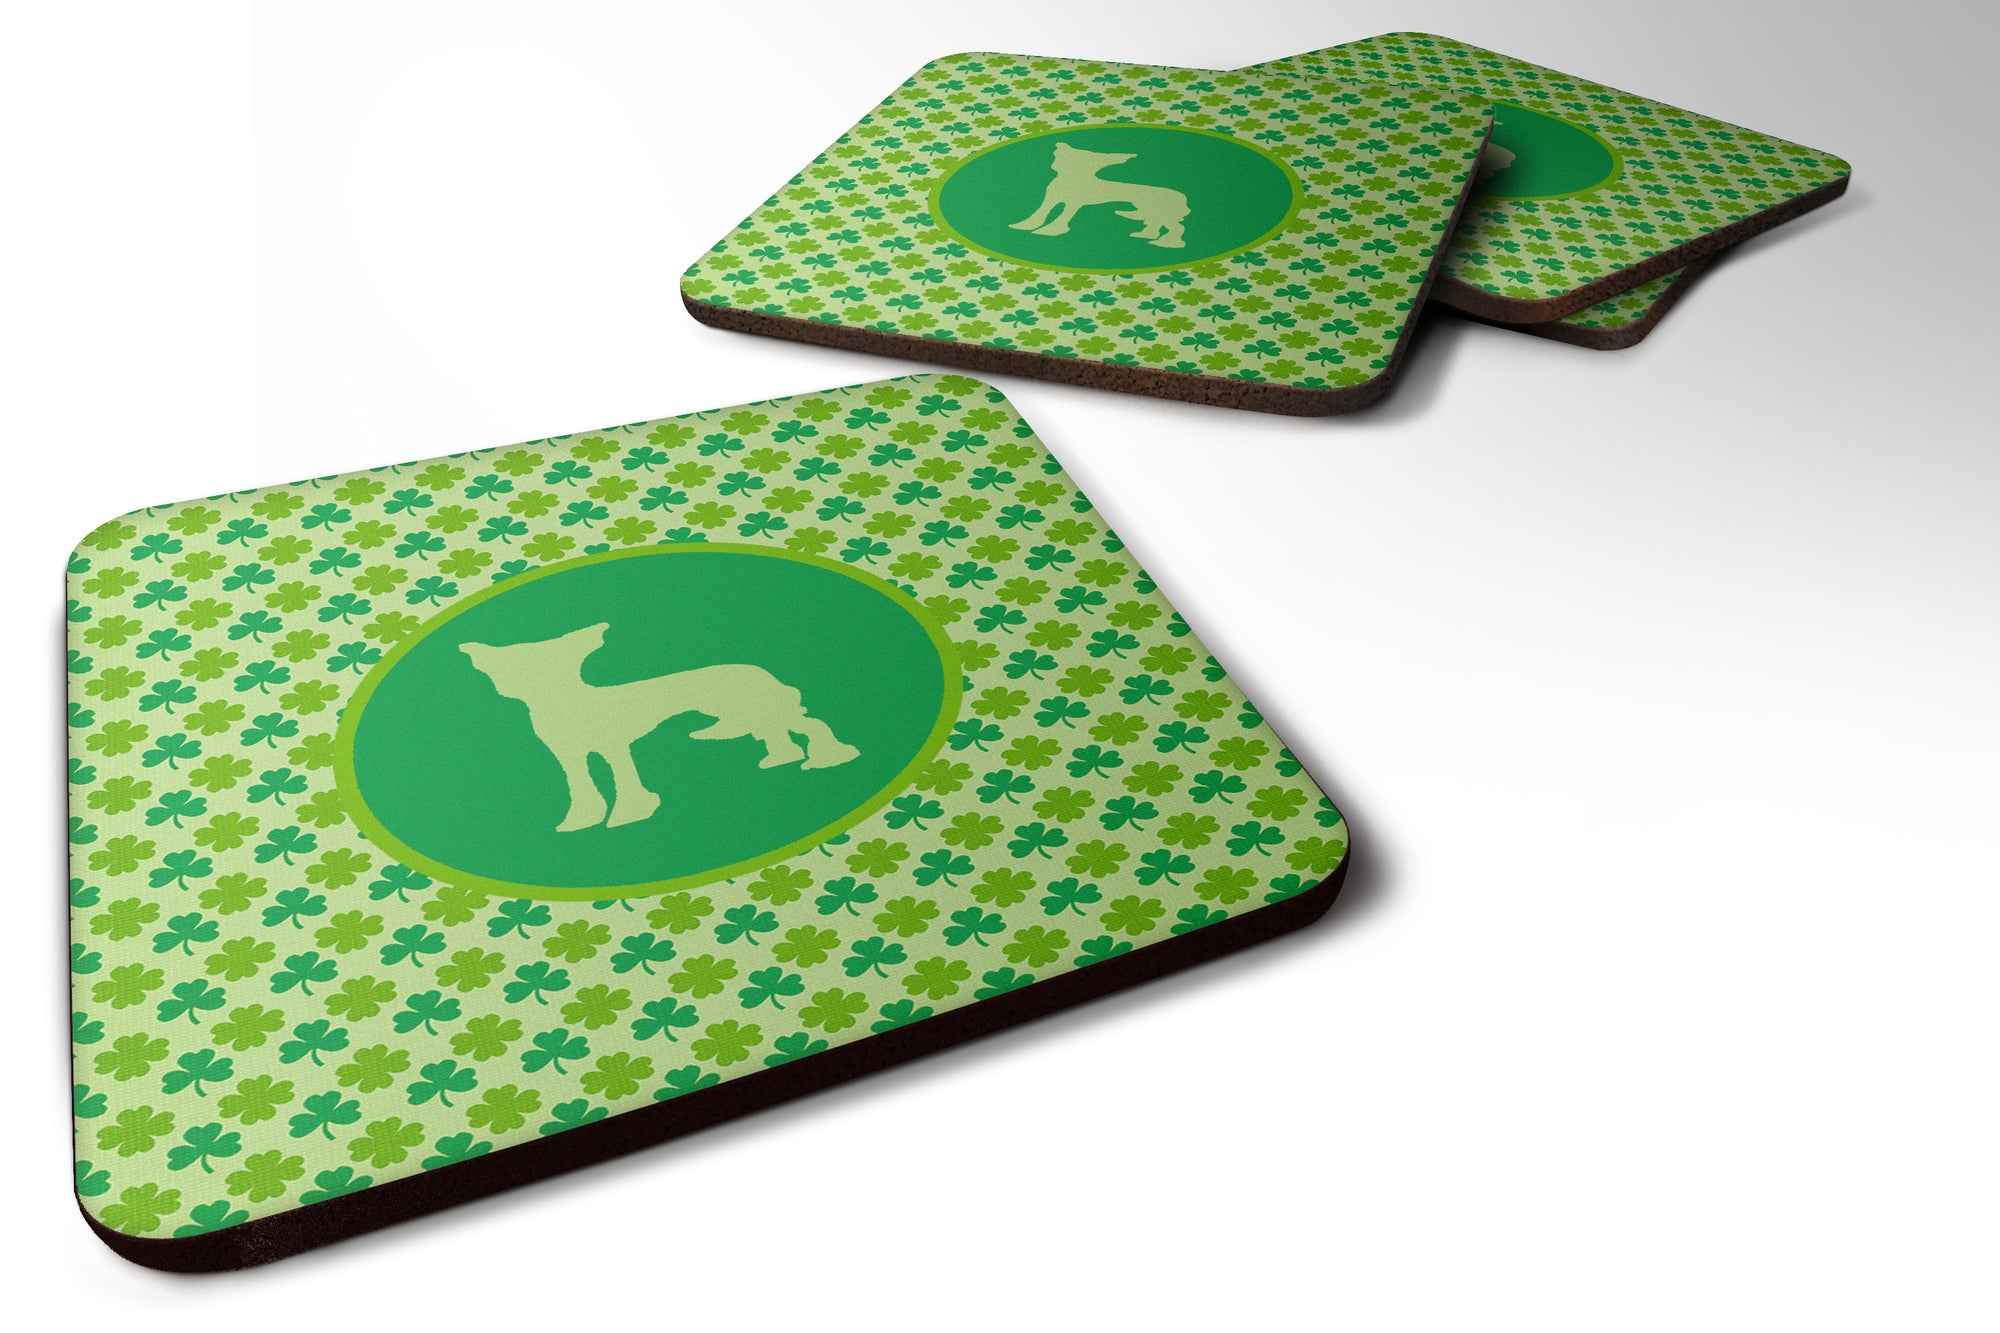 Set of 4 Chinese Crested  Lucky Shamrock Foam Coasters by Caroline's Treasures